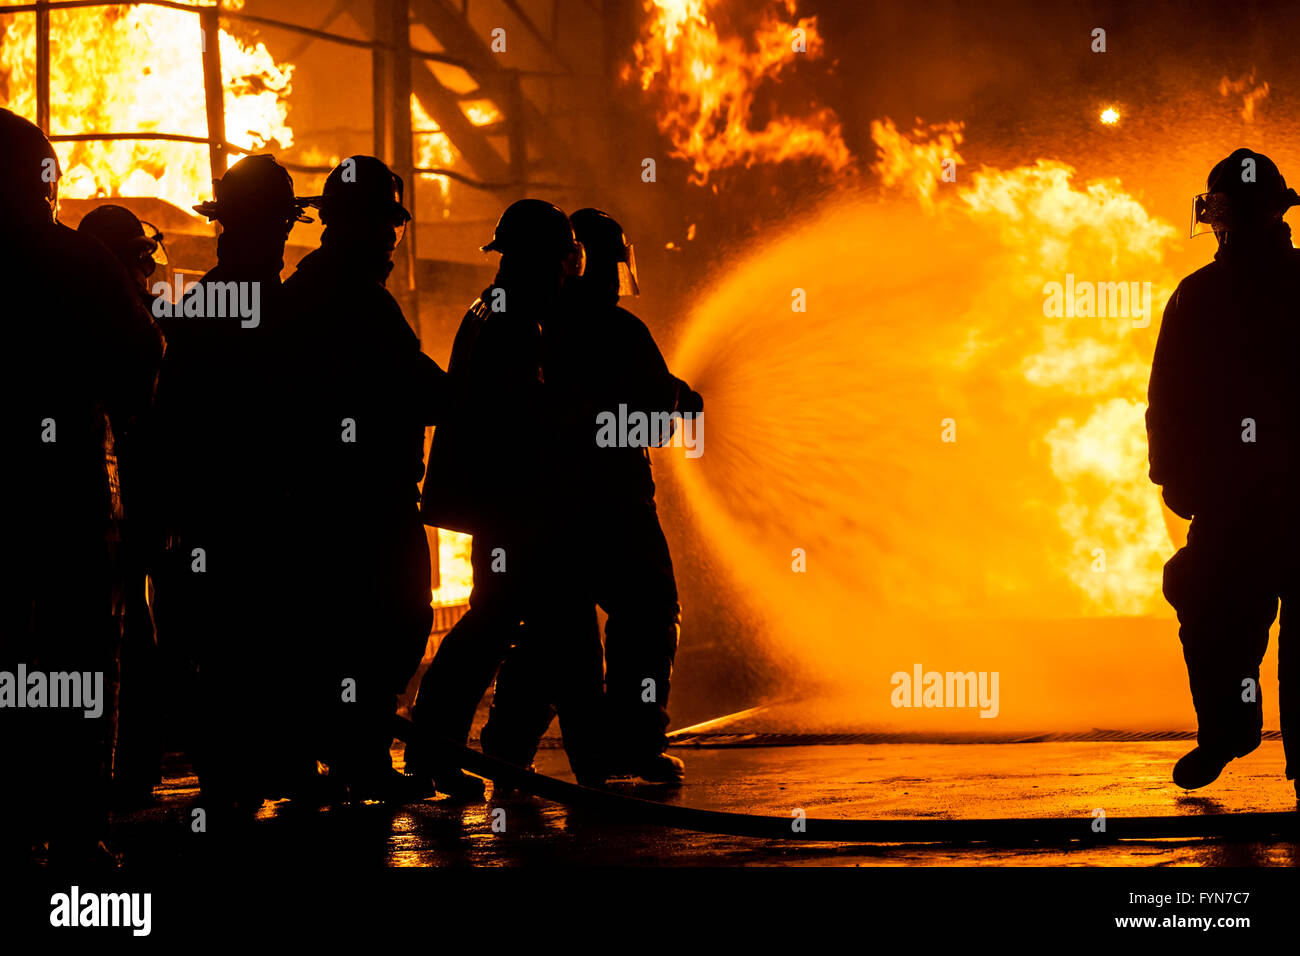 Firefighters putting out burning structure with water - Stock Image